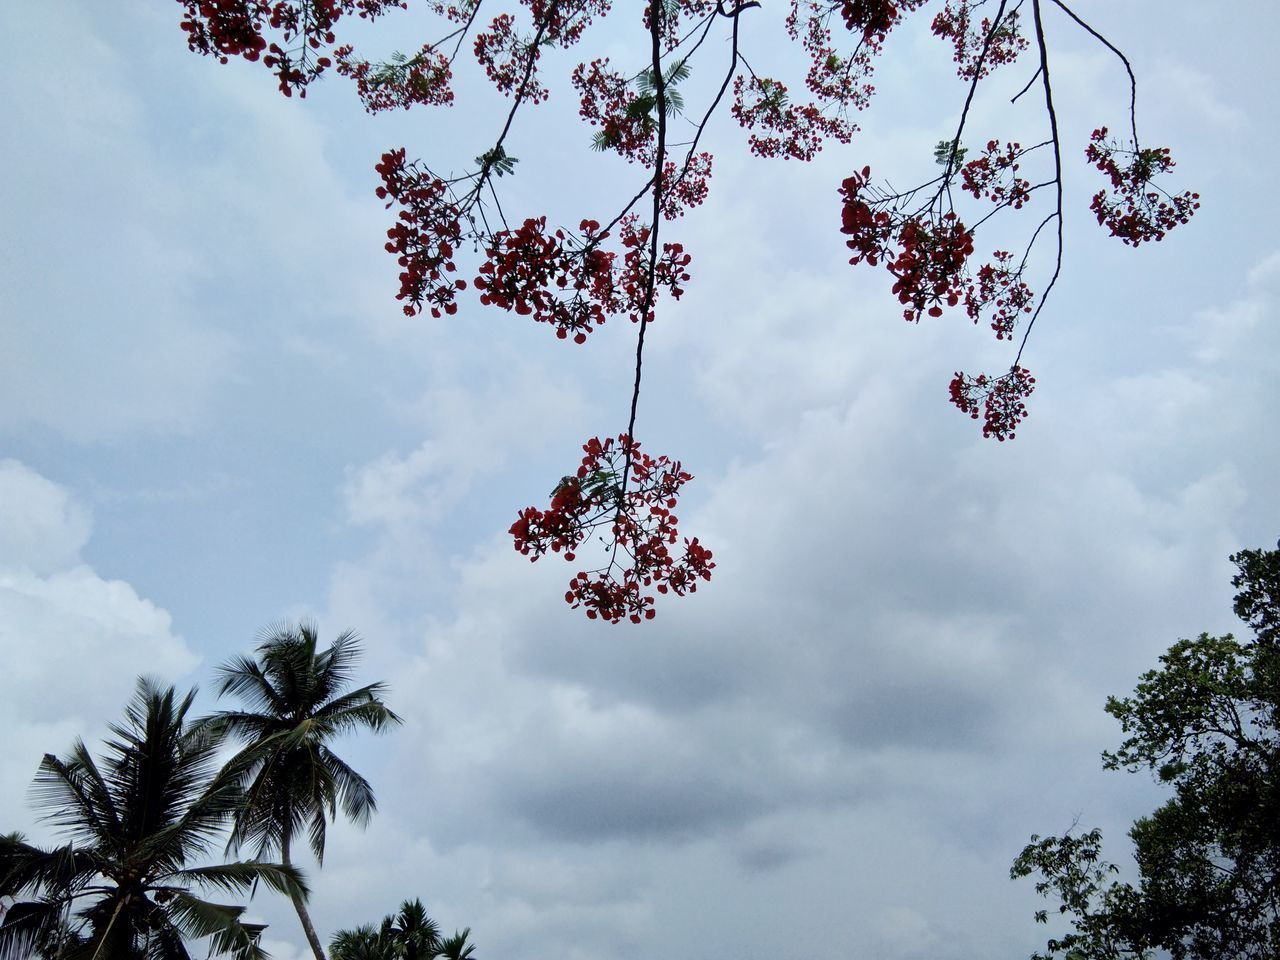 tree, low angle view, sky, cloud - sky, growth, day, outdoors, nature, beauty in nature, no people, branch, palm tree